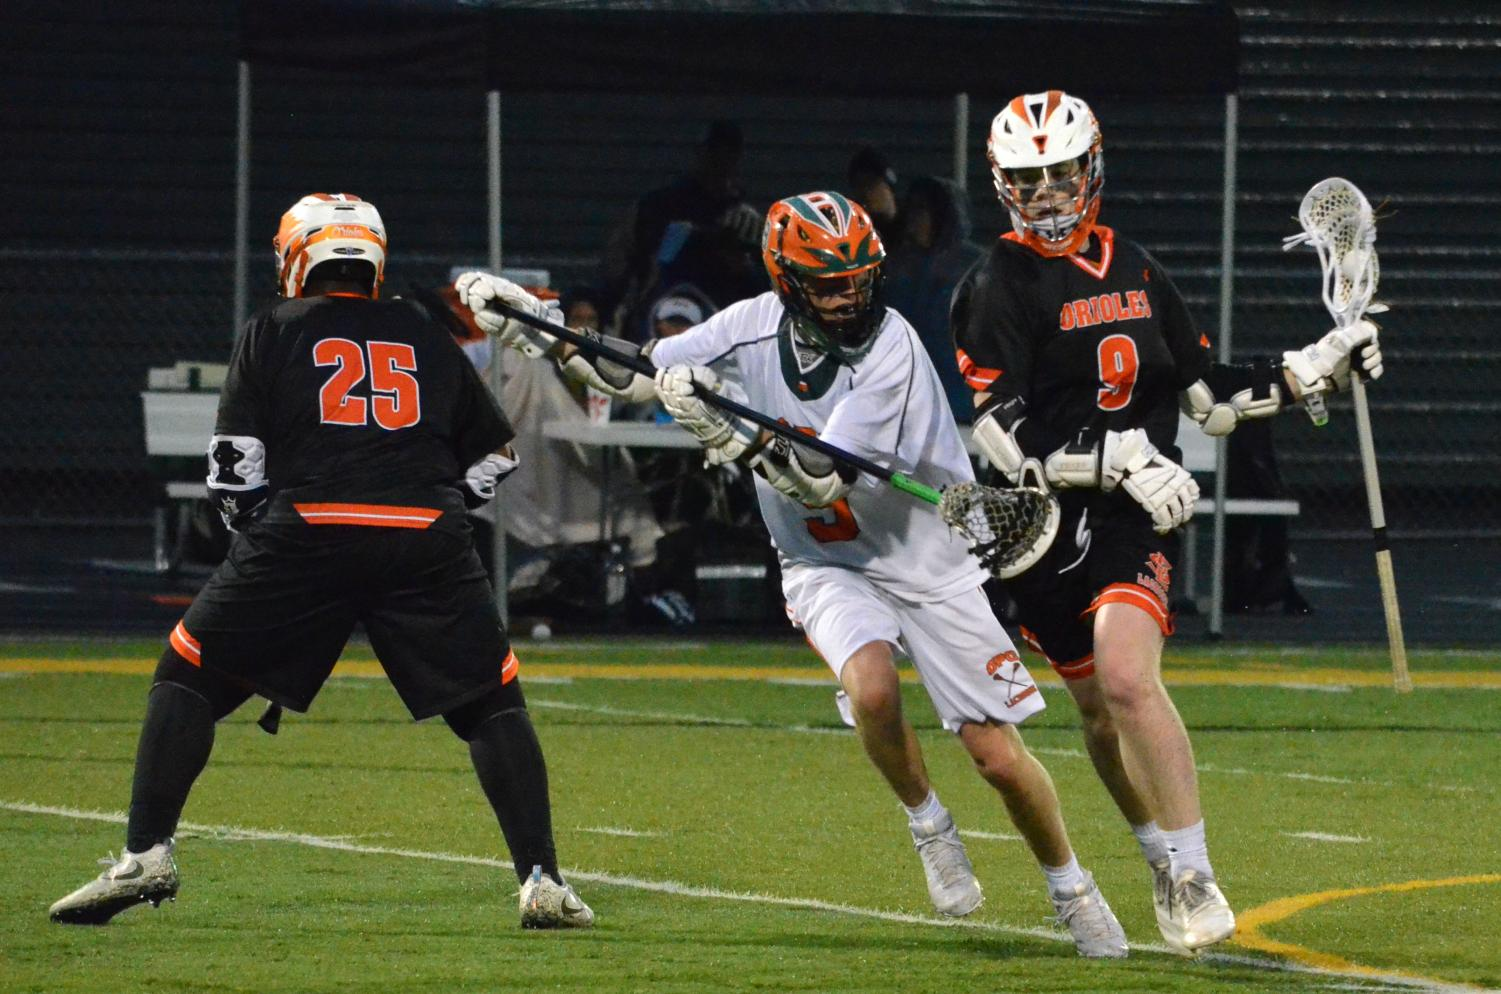 Junior Flynn Spano takes the ball upfield while avoiding a Park Center defender. Park scored its only two goals in the first quarter of the game.